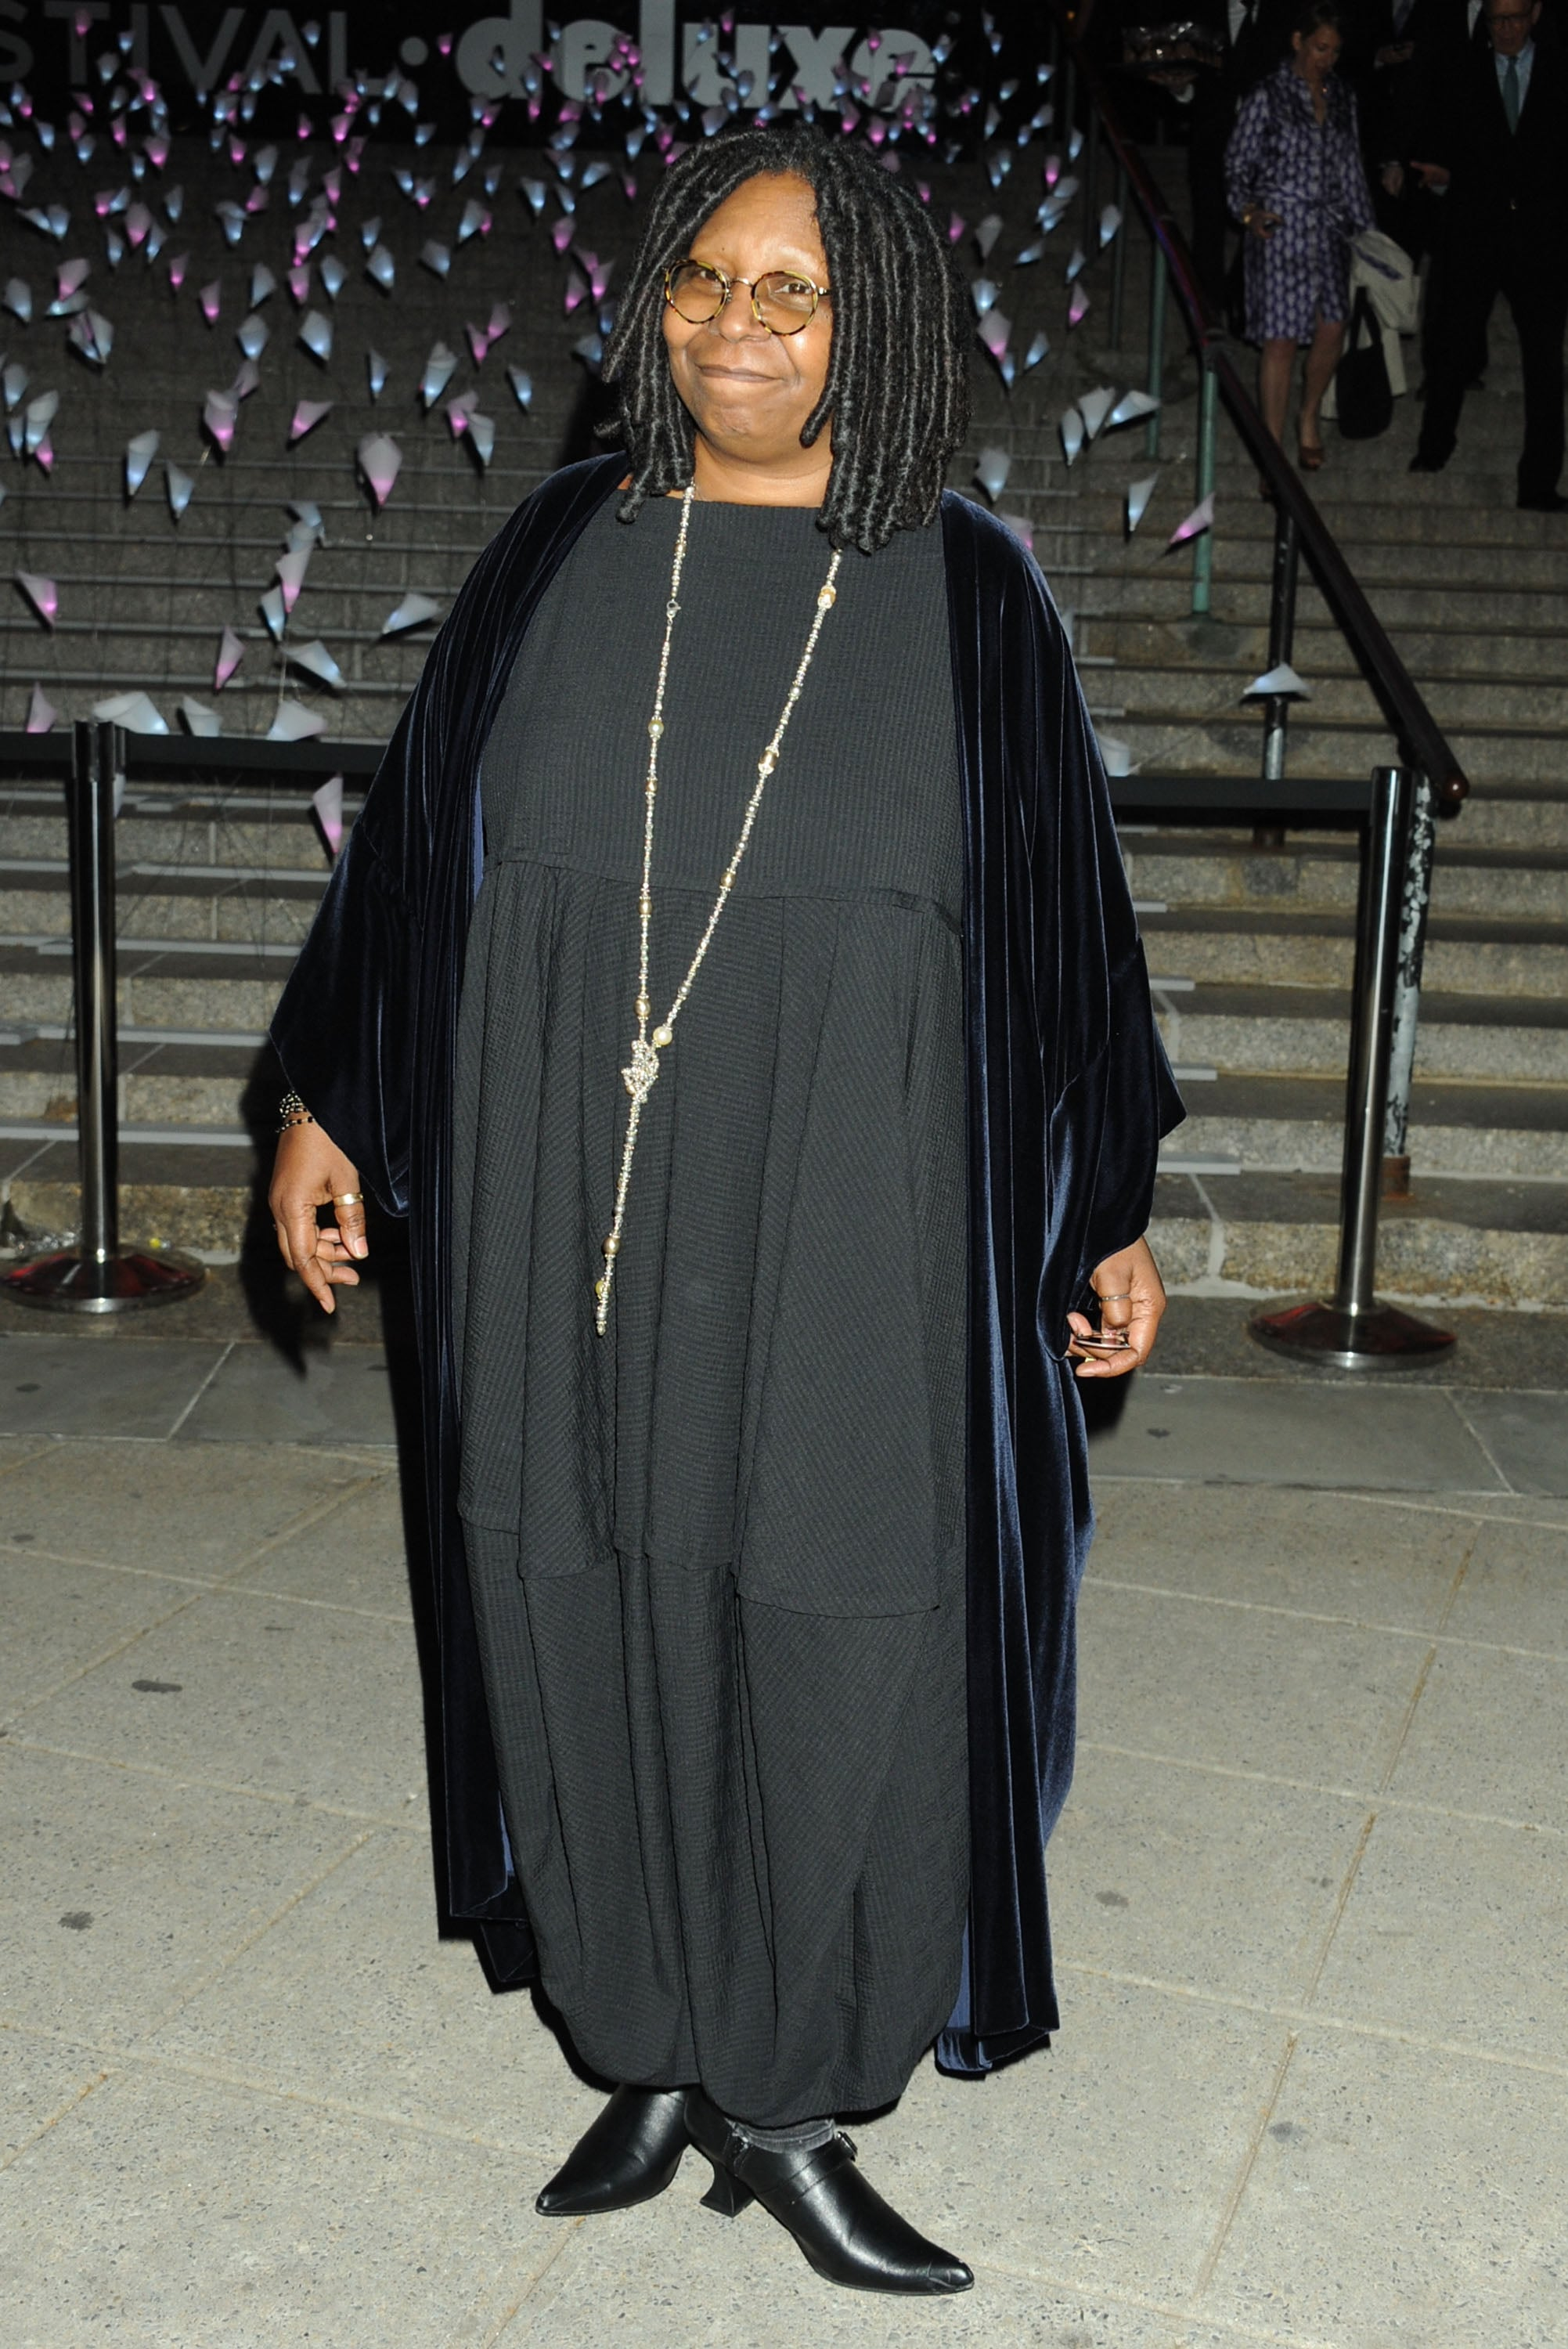 Whoopi Goldberg smiled for the cameras at Vanity Fair's party.